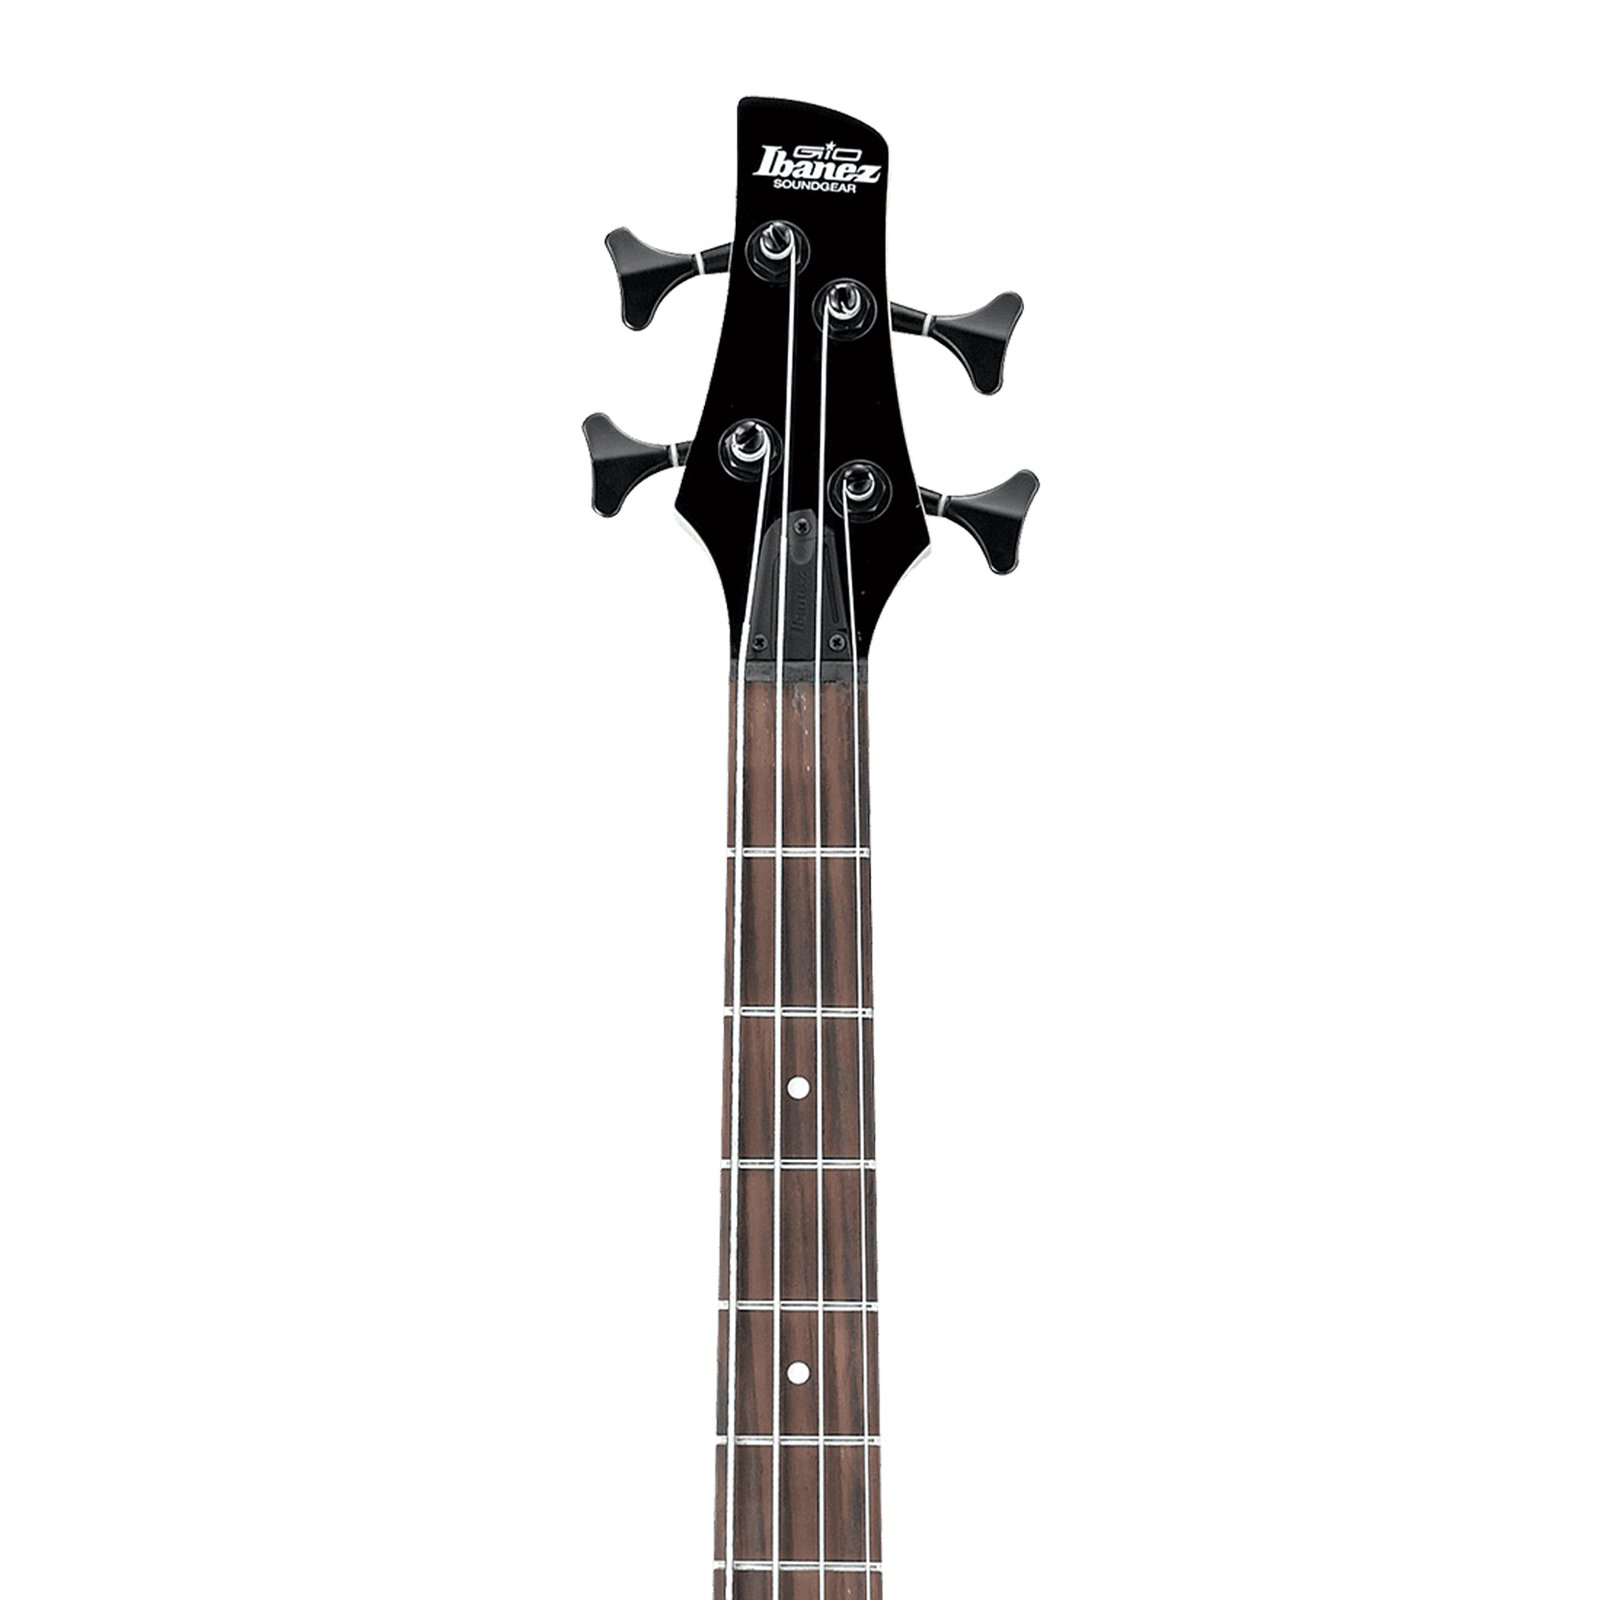 IBANEZ GSR320-BEM ELECTRIC BASS GUITAR (BALTIC BLUE METALIC) WITH GIGBAG, CABLE AND STRAP